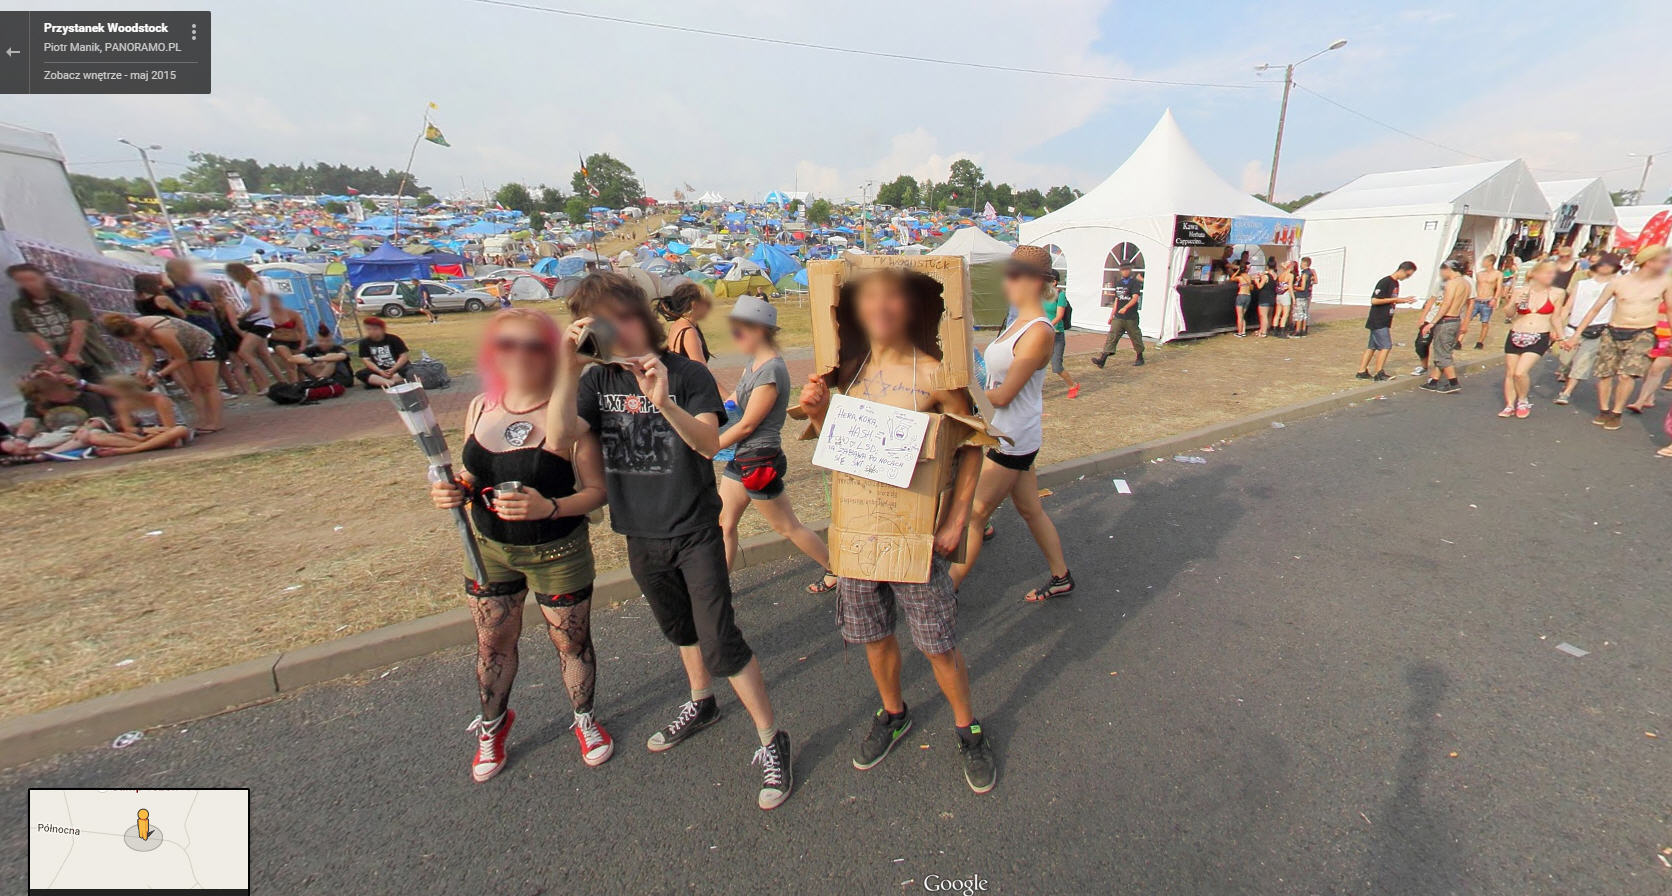 Crazy people at the Polish Version of Woodstock…